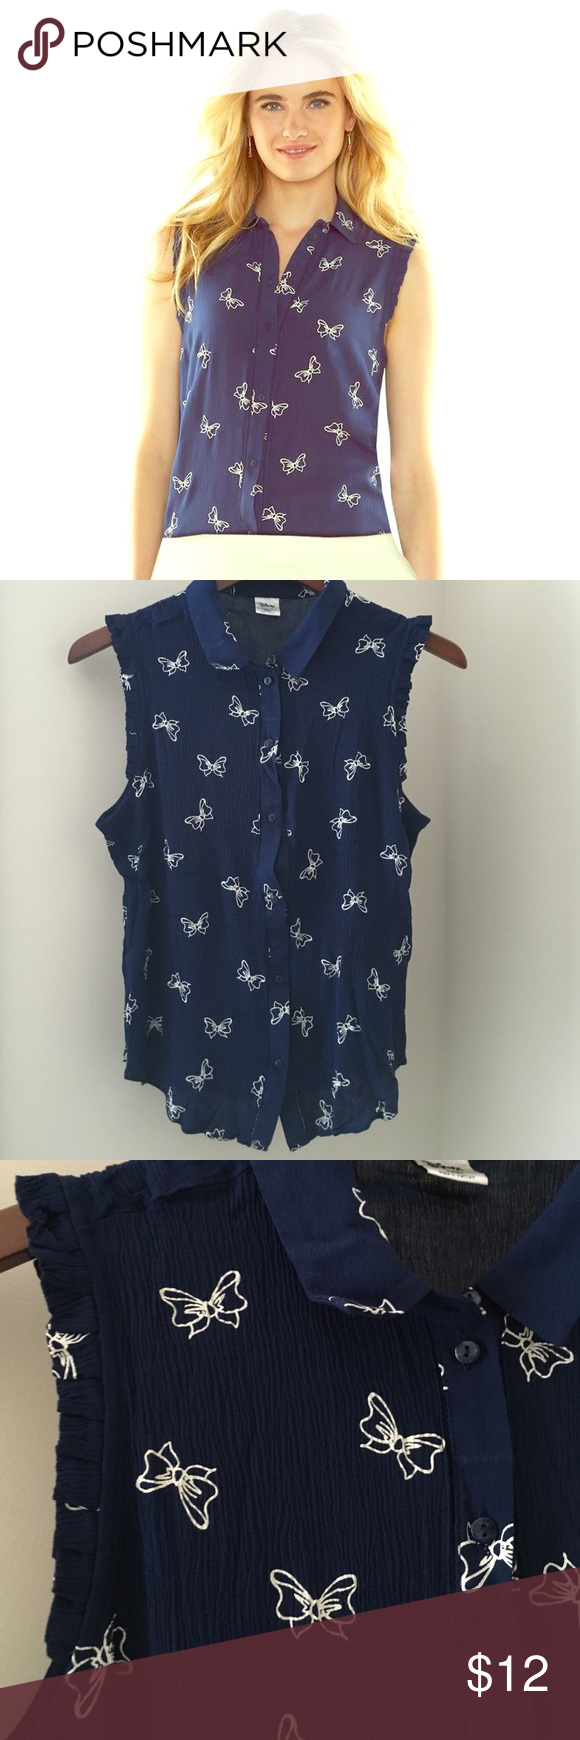 Disney by Lauren Conrad sleeveless blouse Adorable navy blue button down sleeveless blouse from Lauren Conrad's Disney collection.  Ruffle detail around the arm and Minnie Mouse bow print. Excellent condition! LC Lauren Conrad Tops Blouses